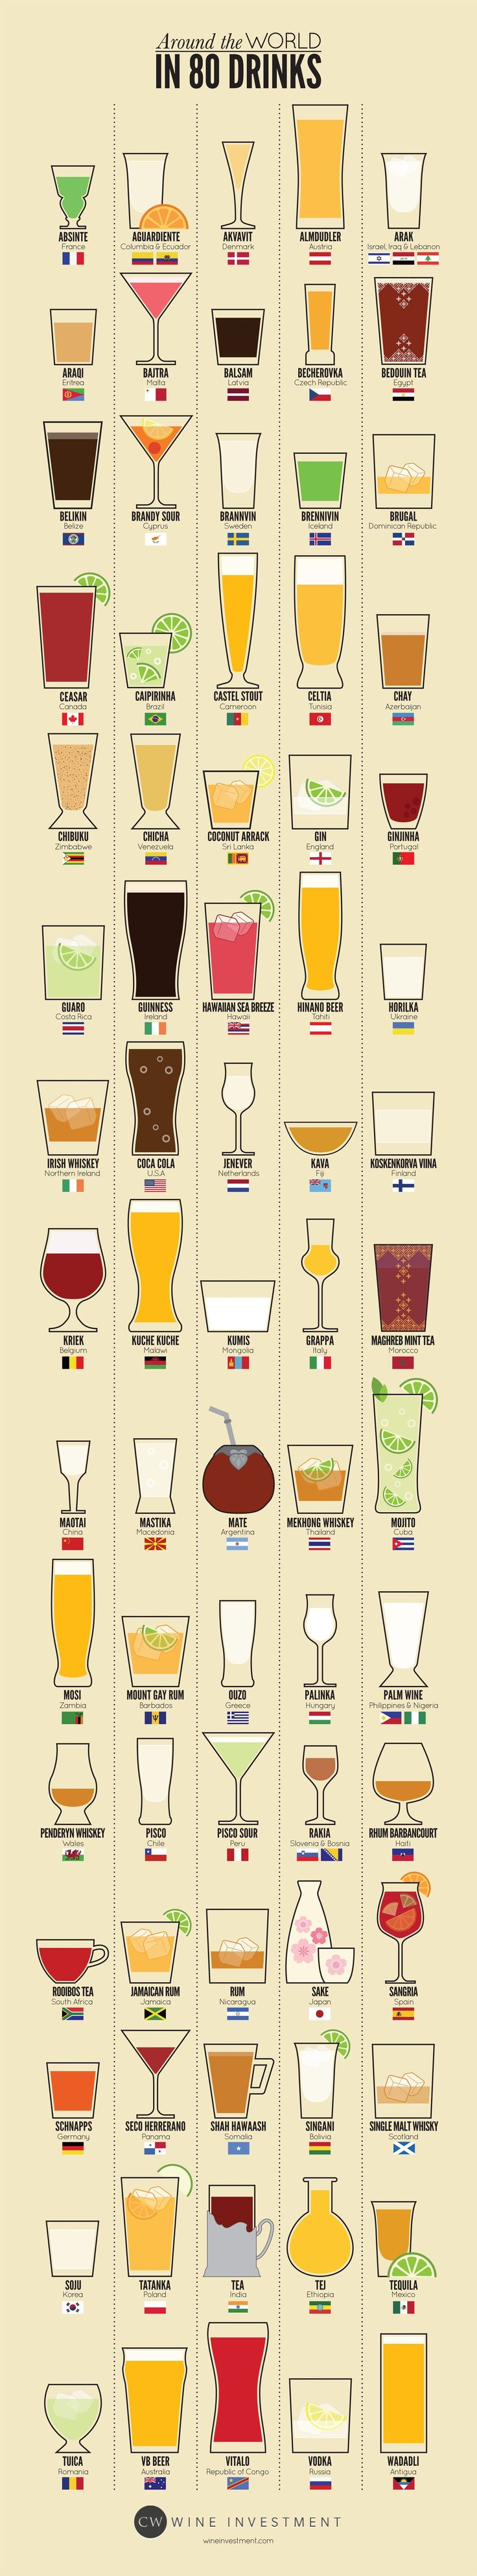 specialty drinks around the world